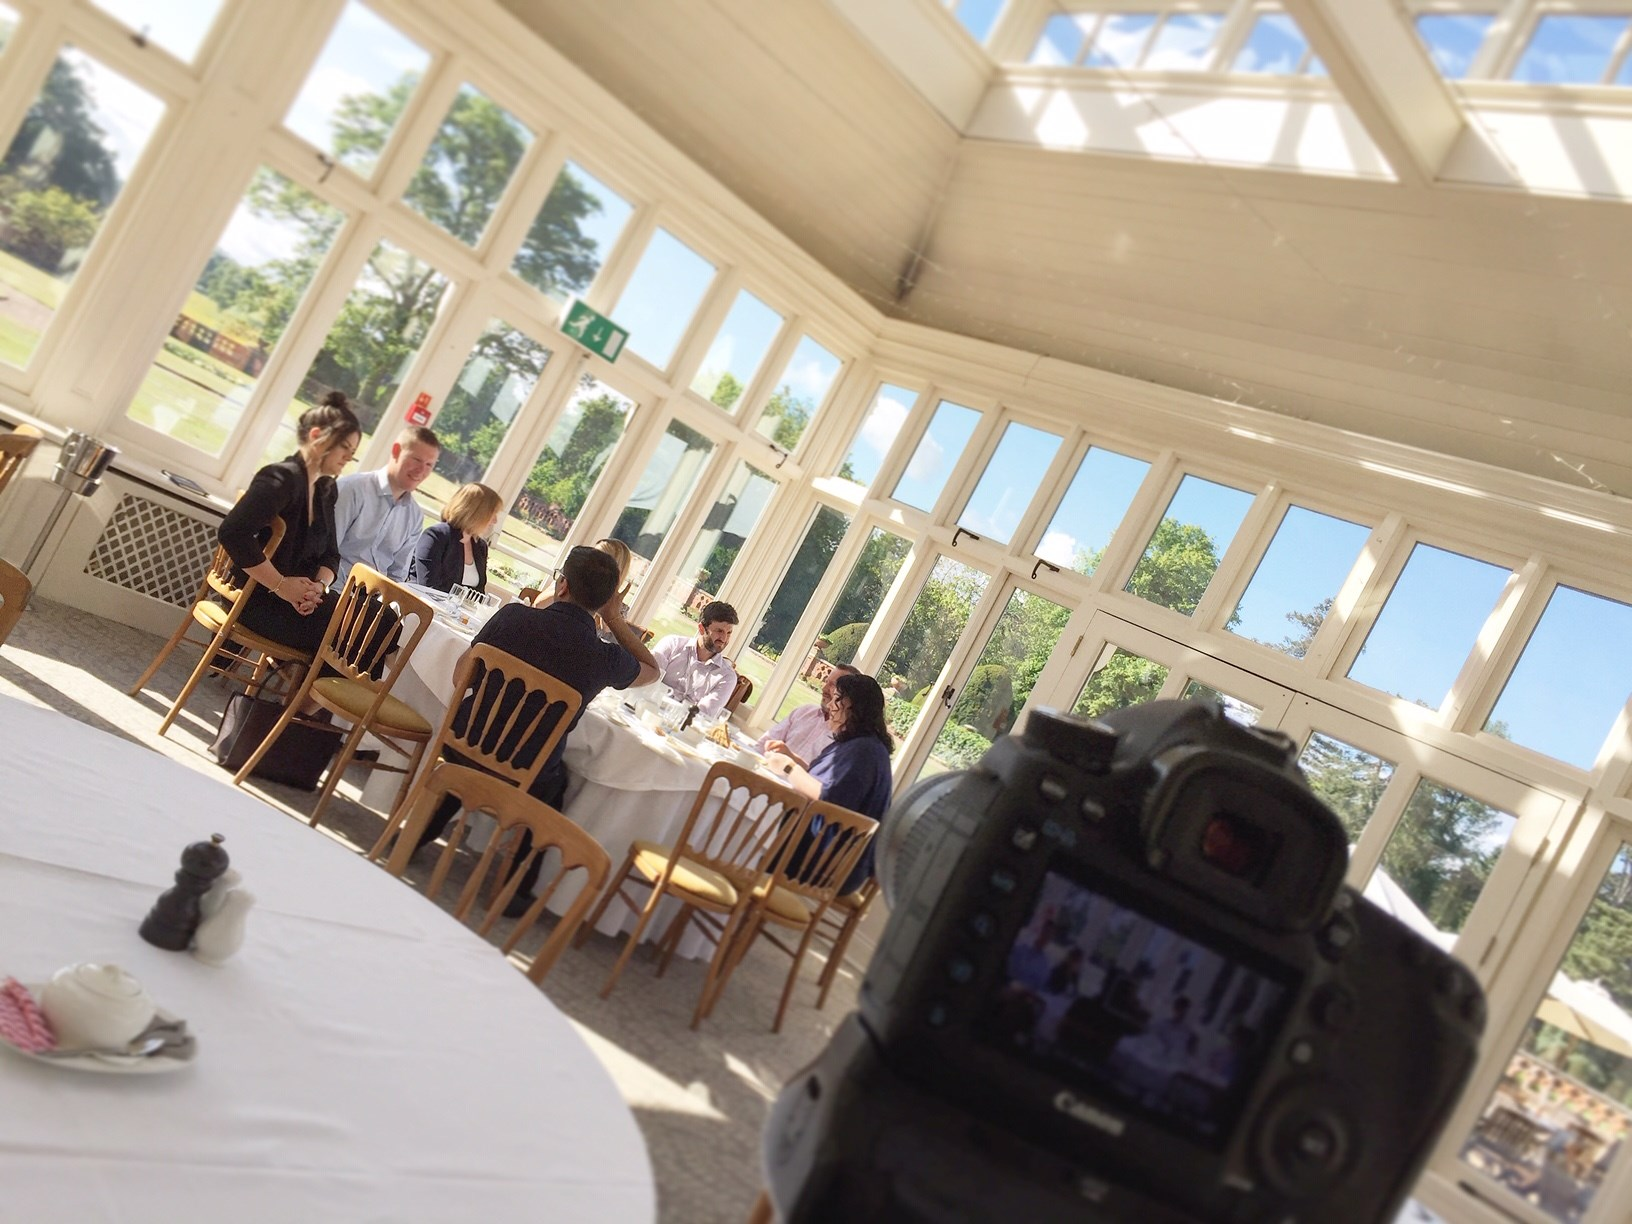 Filming at the Elvetham Hotel